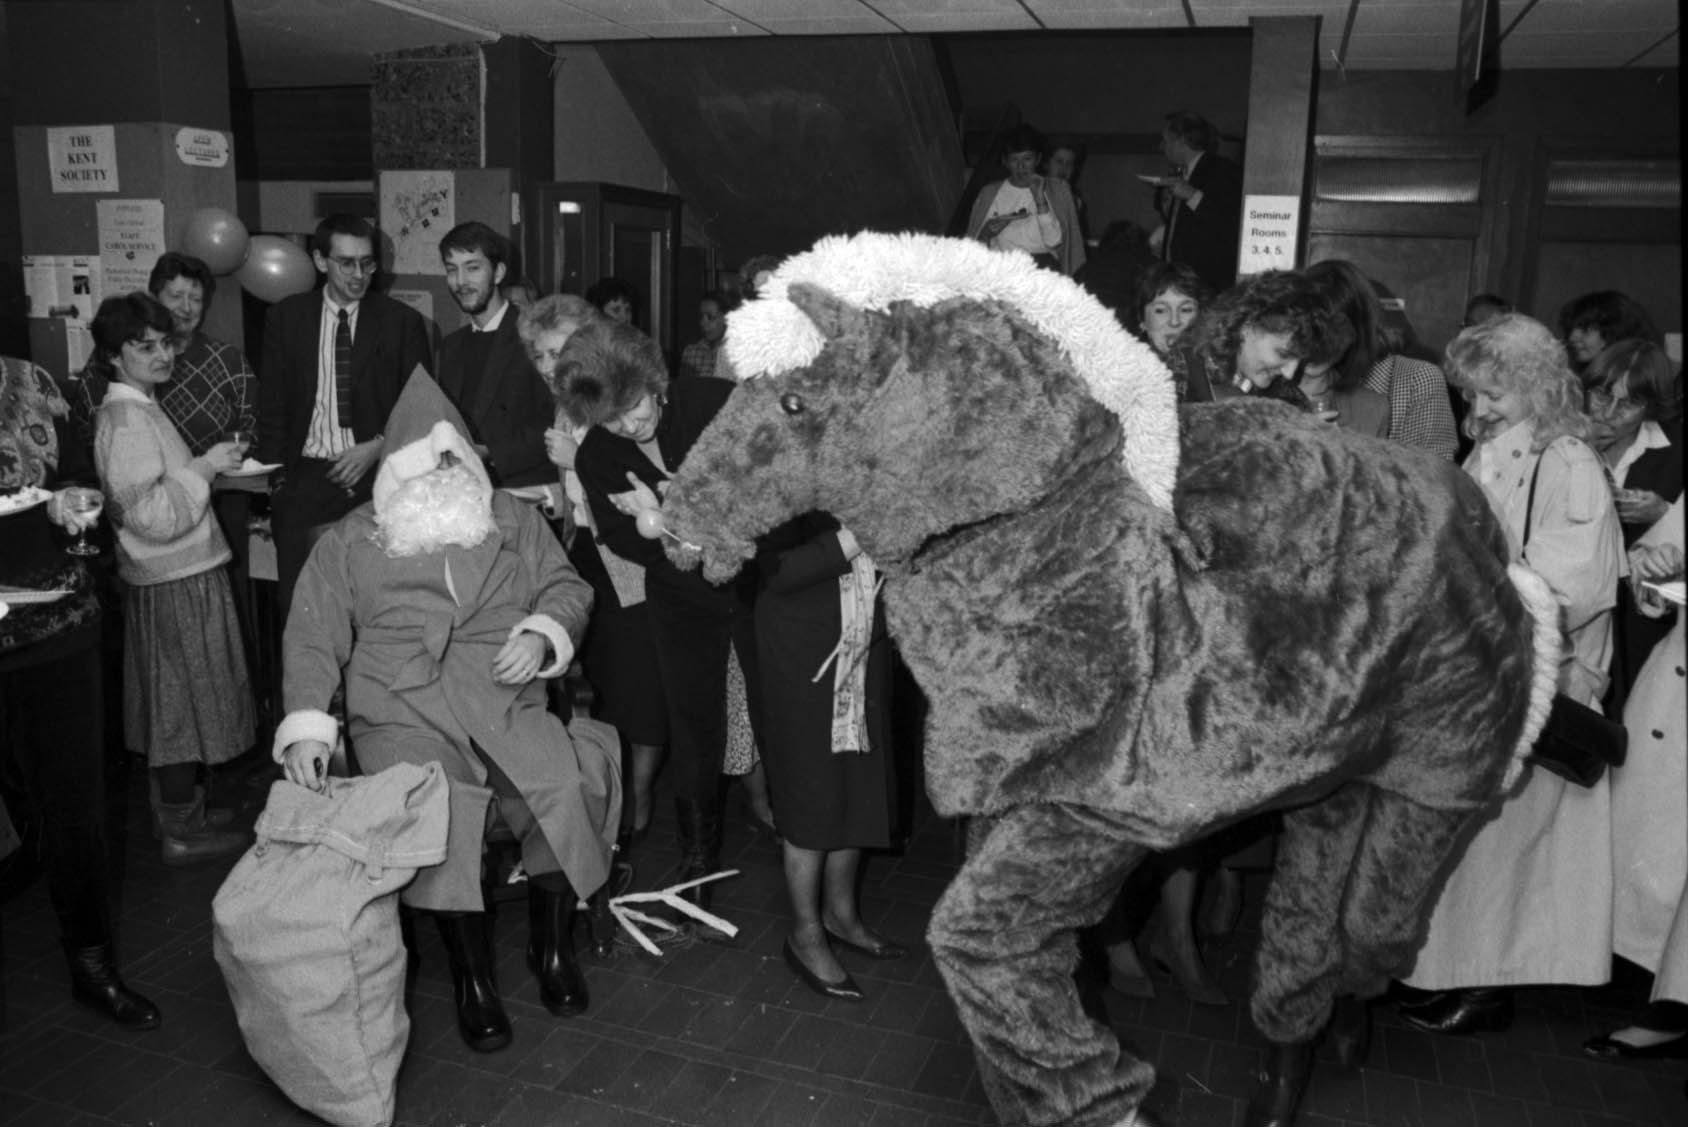 Black and white photograph showing a party in the Registry Office, 1990, complete with Santa and a pantomime horse. [University of Kent Archive, 1471.2]